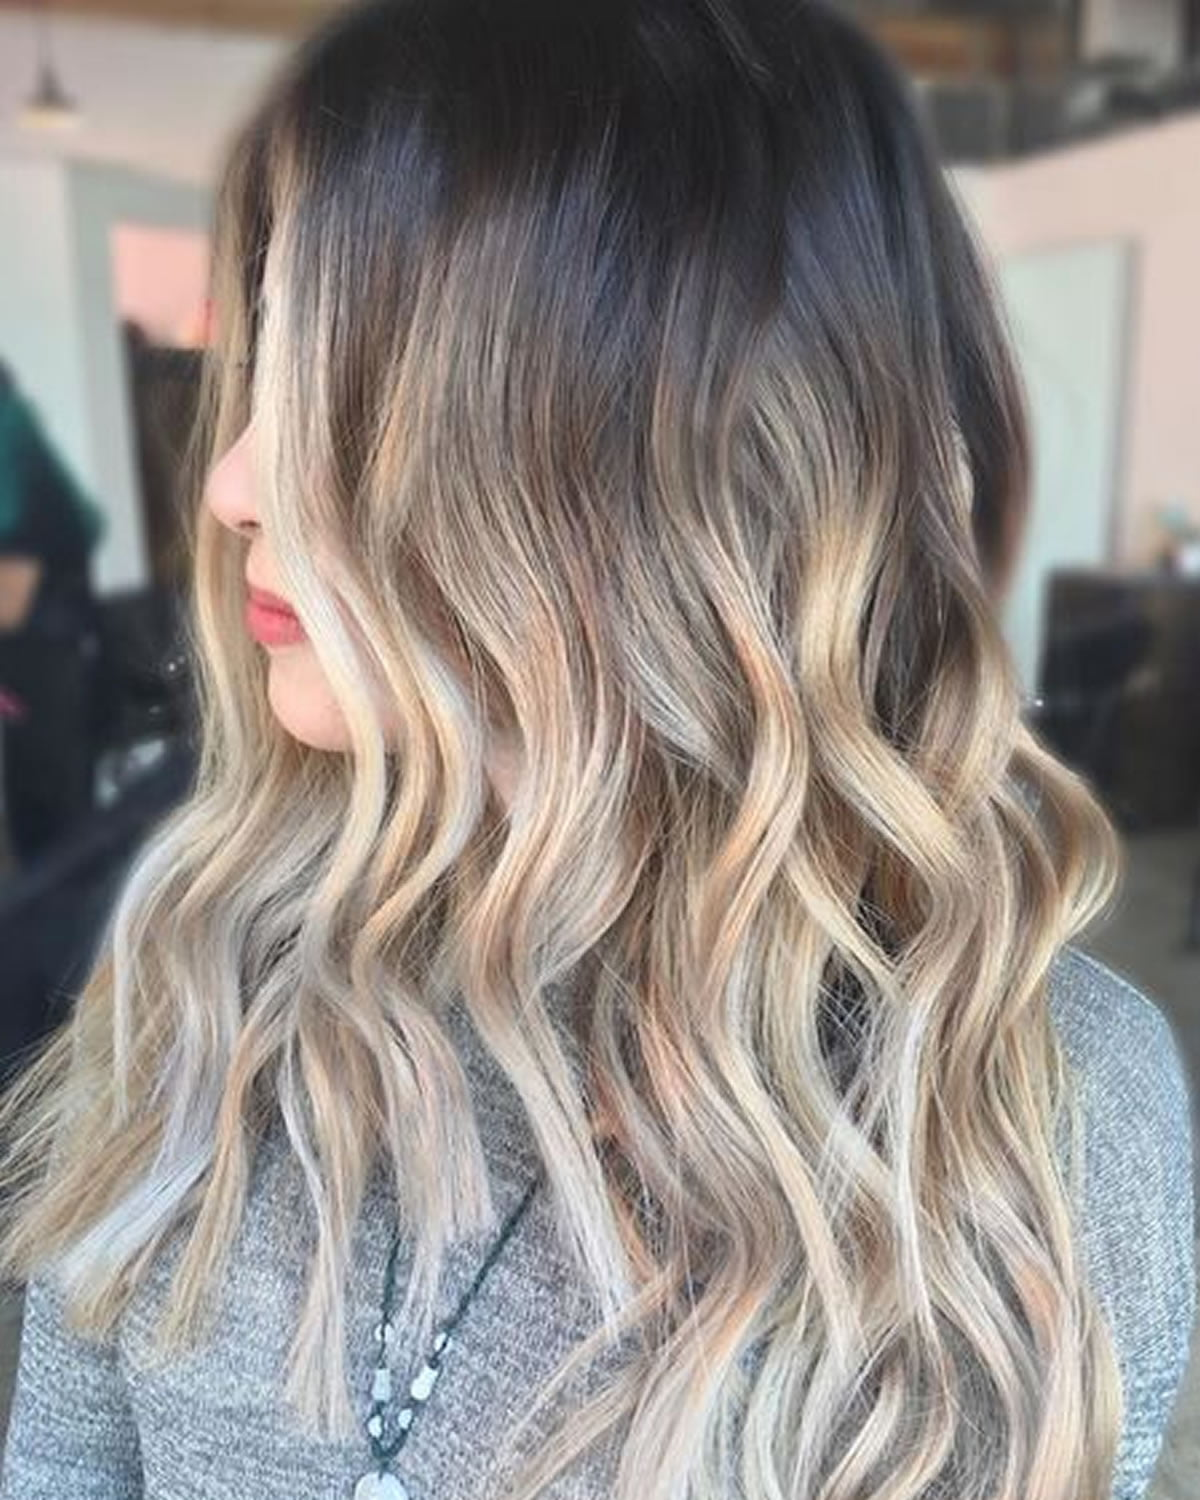 2018 balayage hairstyles for long hair balayage hair ideas page 5 hairstyles. Black Bedroom Furniture Sets. Home Design Ideas